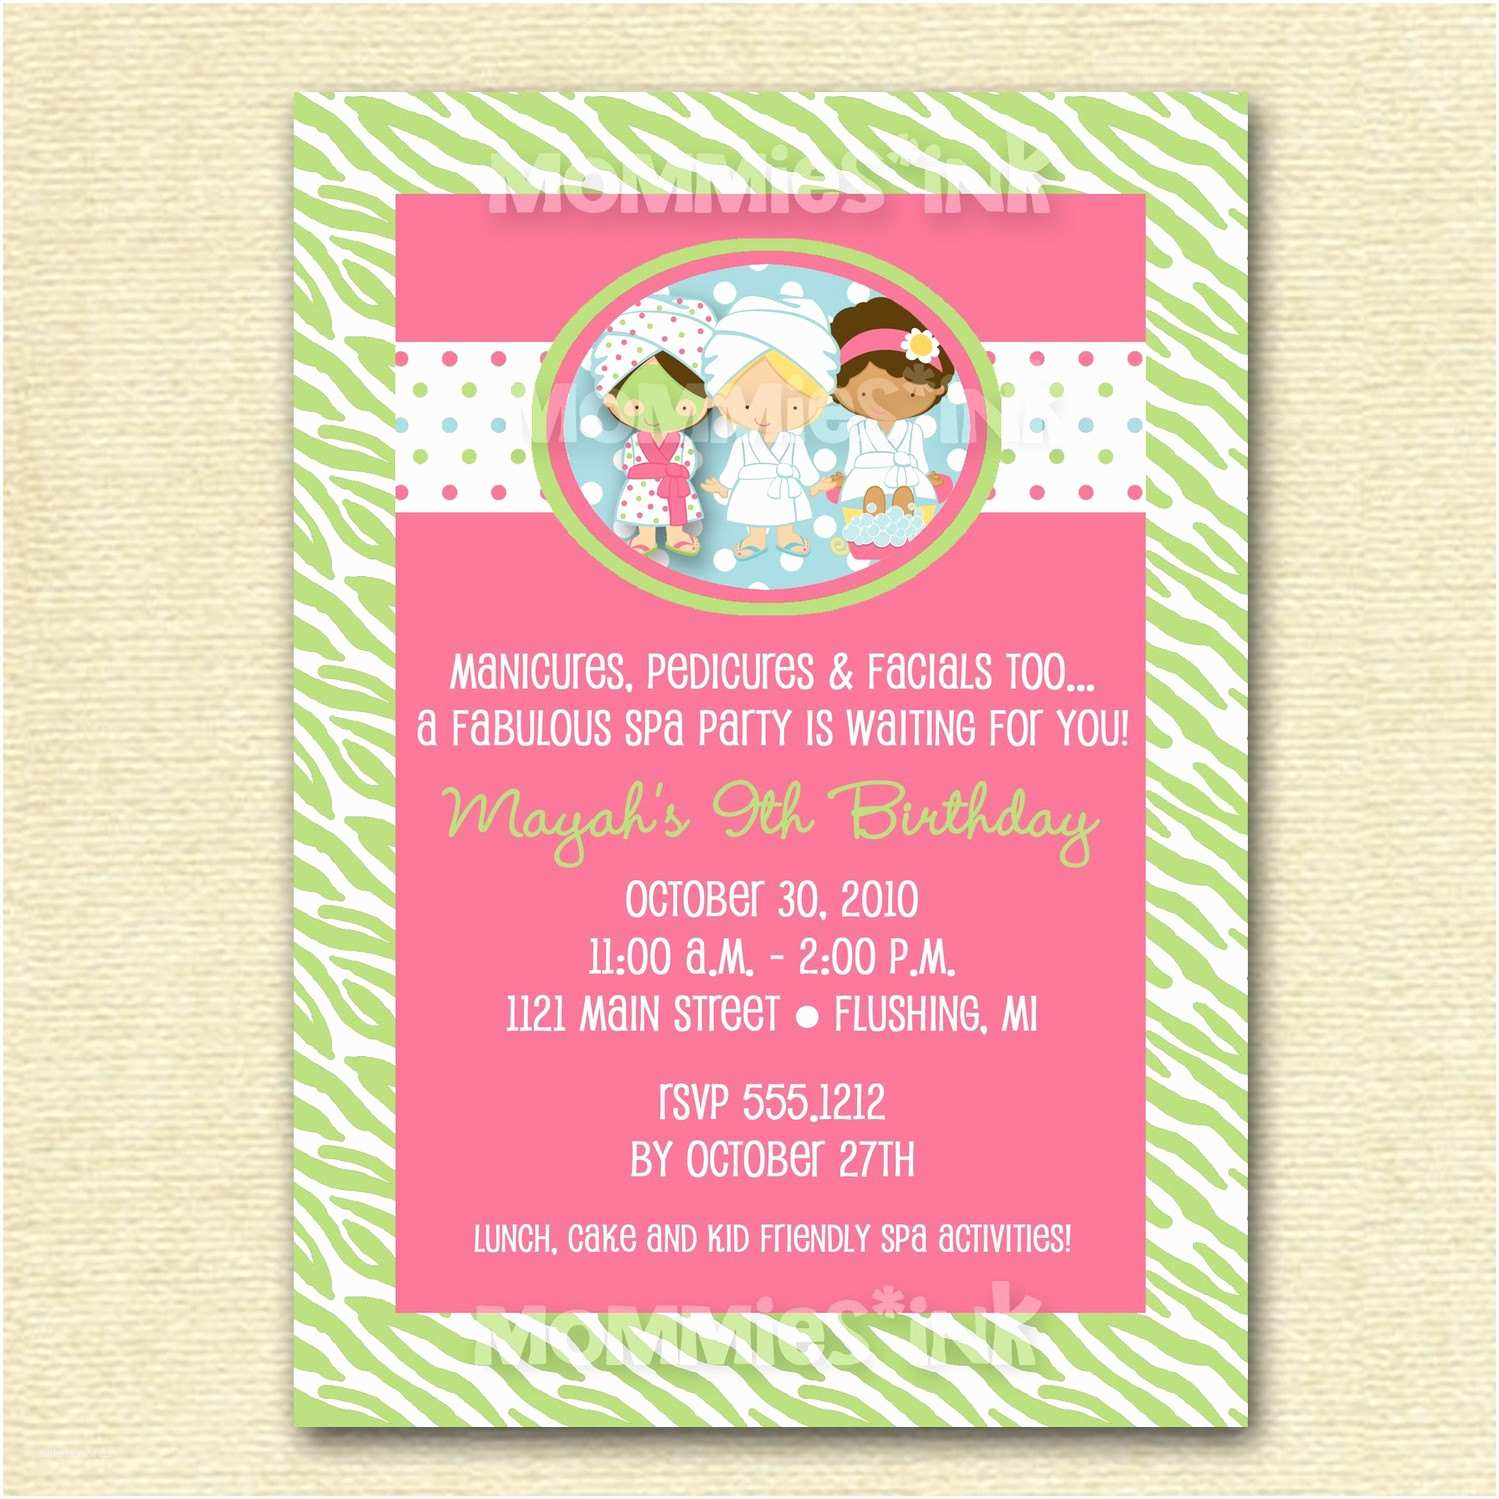 Our Best Gallery Of 32 Spa Party Invitations